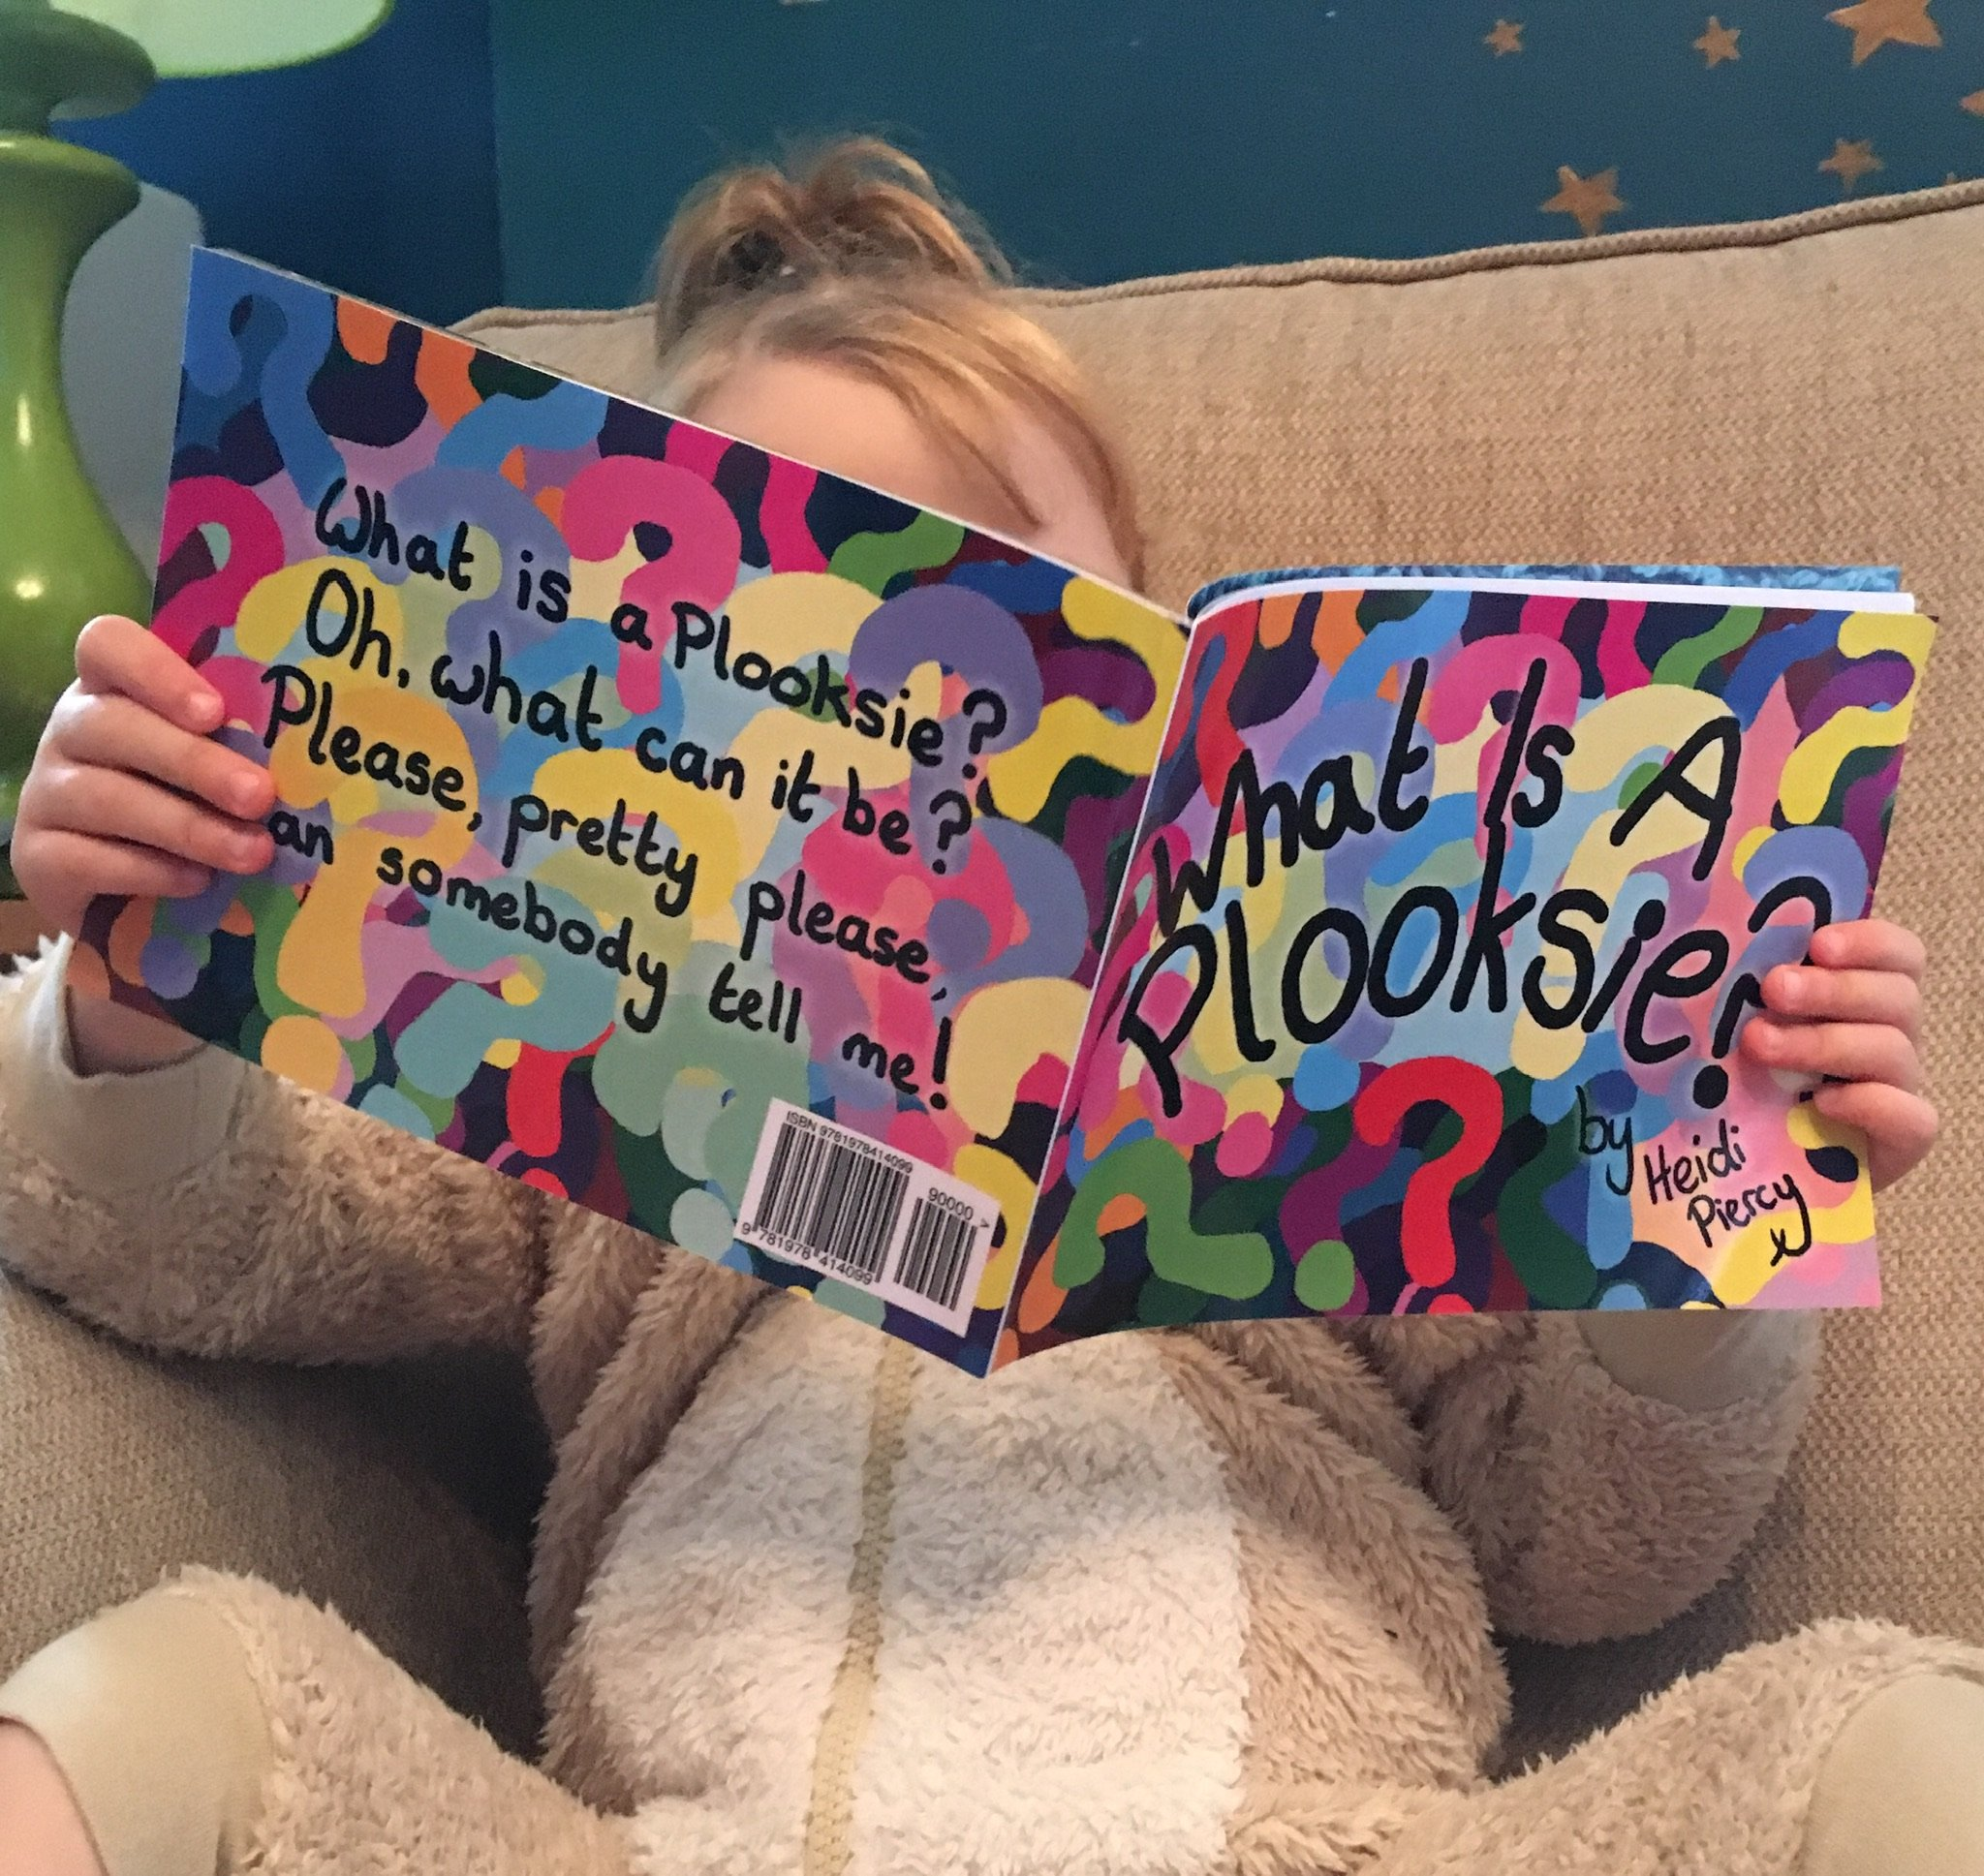 What Is A Plooksie? by Heidi Piercy